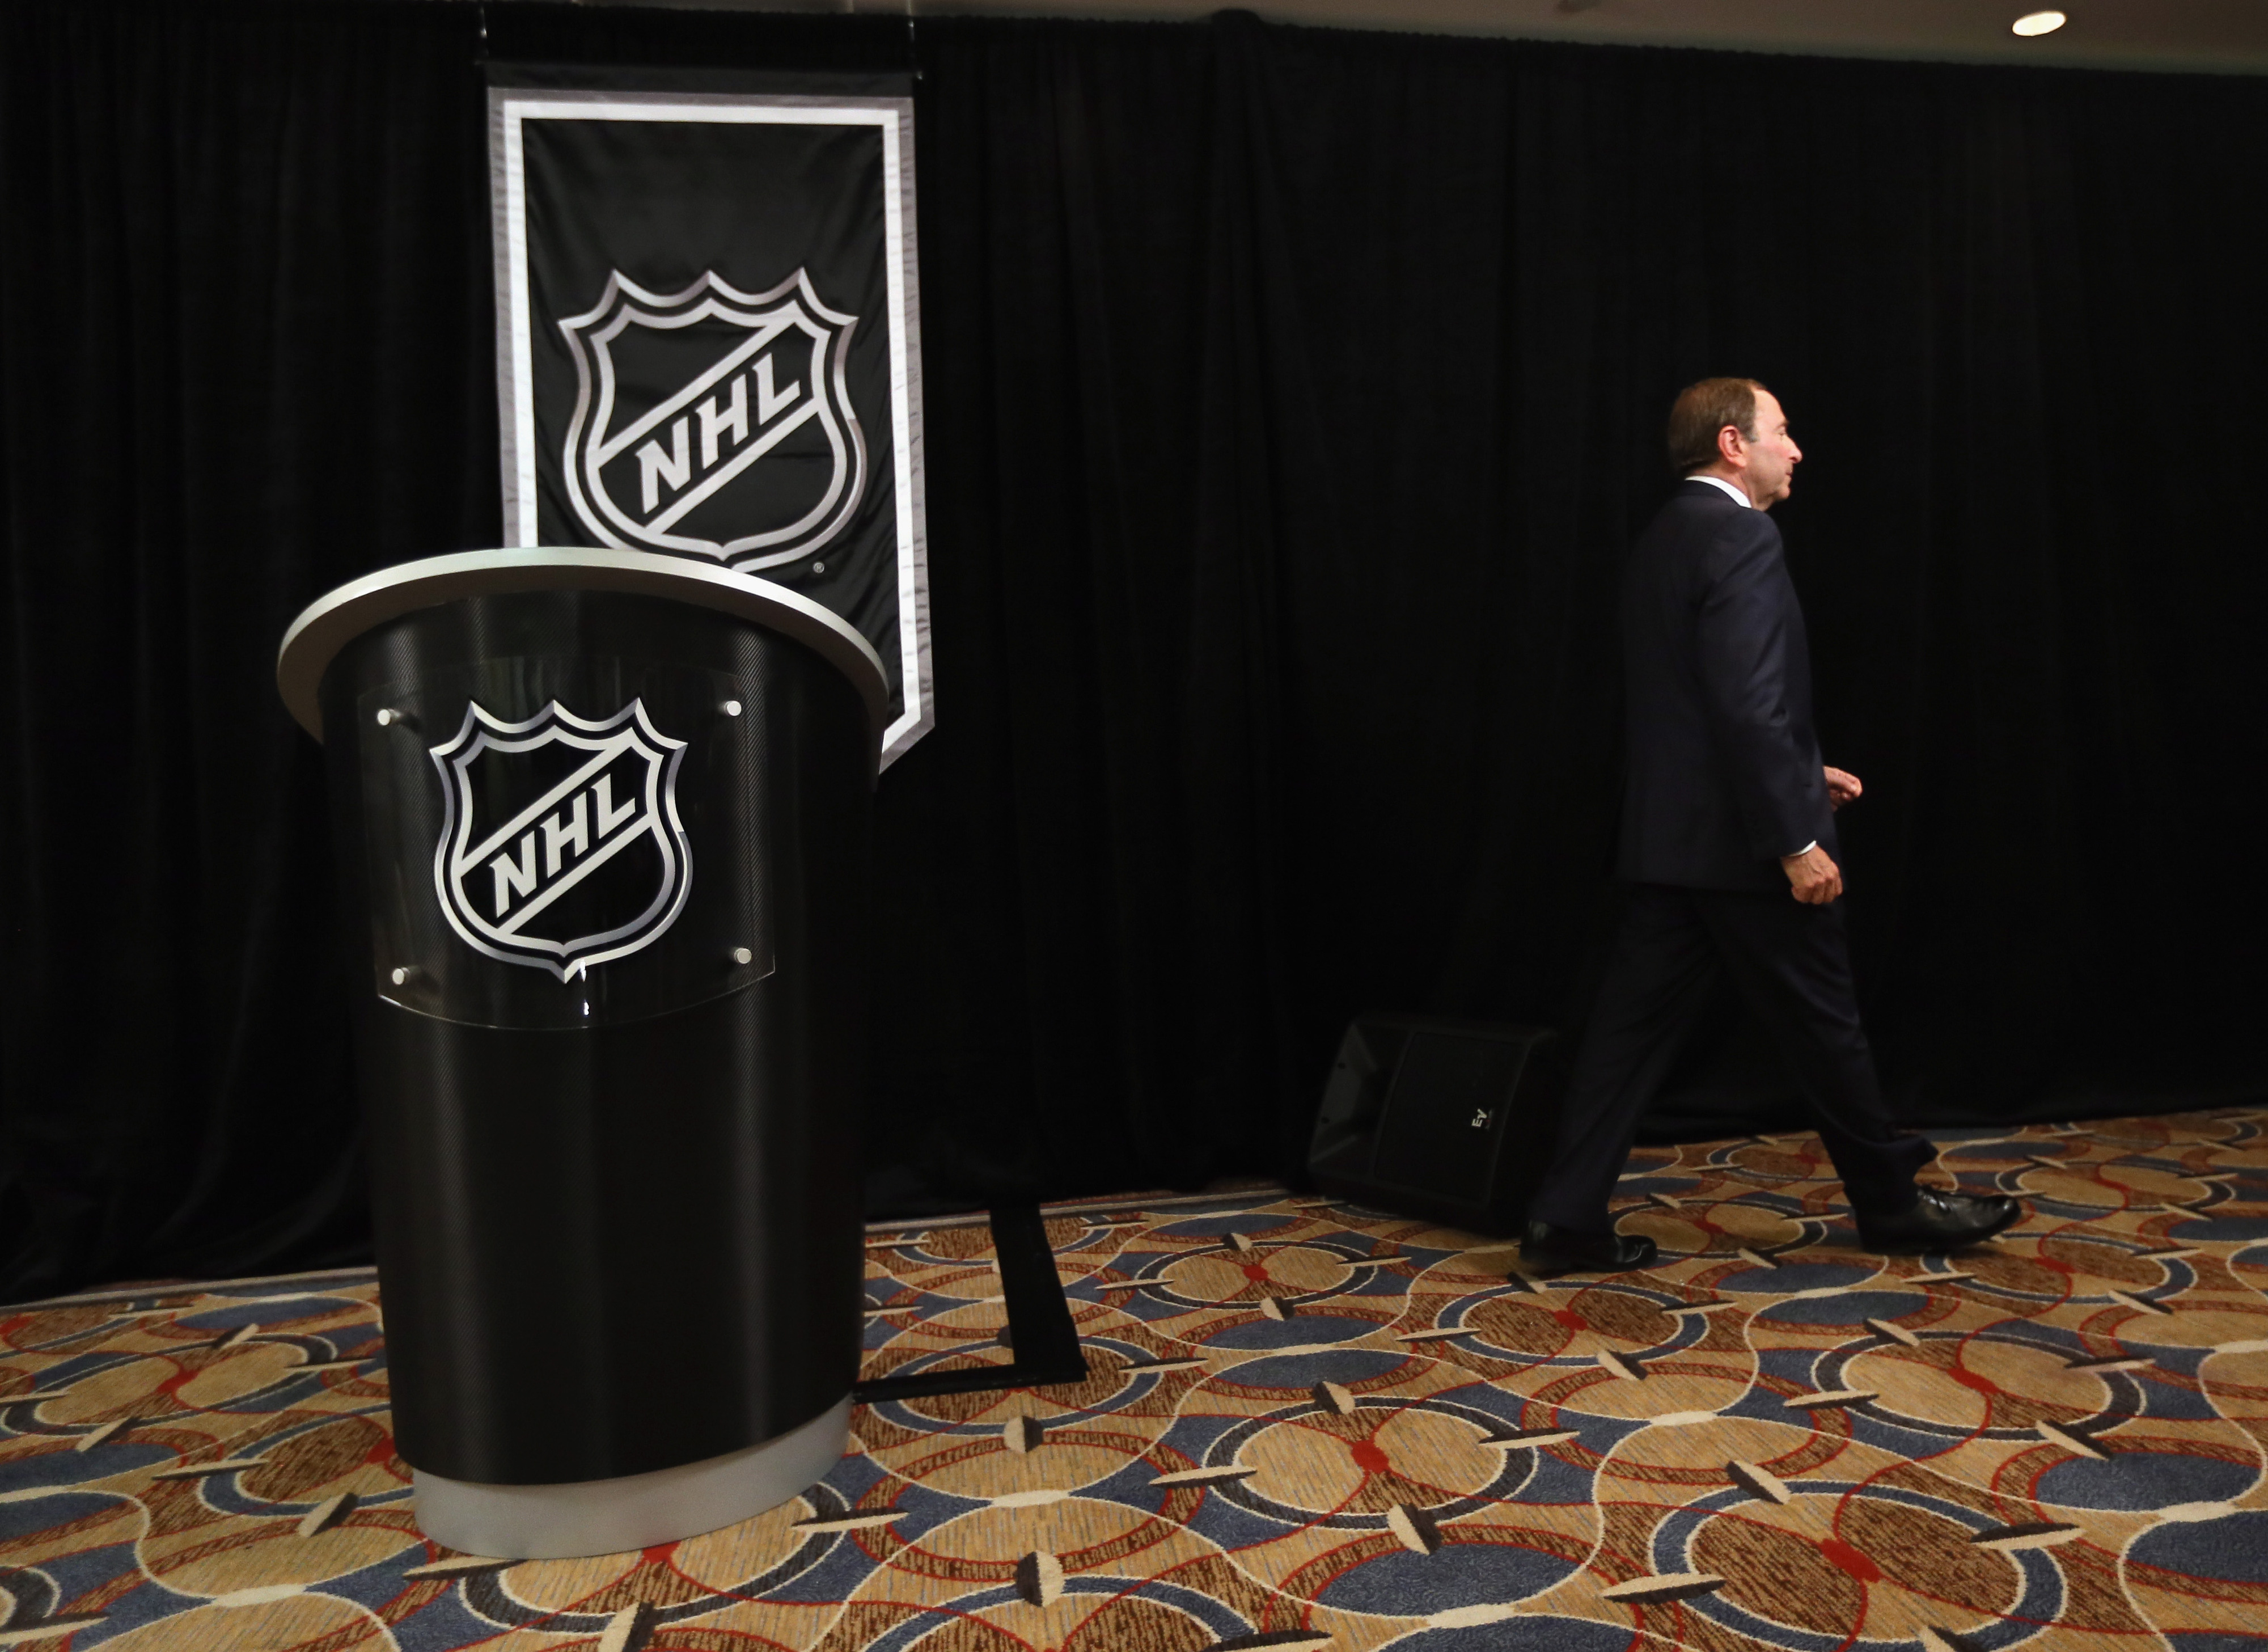 NEW YORK, NY - SEPTEMBER 13:  Commissioner Gary Bettman of the National Hockey League leaves the podium after addressing the media at Crowne Plaza Times Square on September 13, 2012 in New York City.  (Photo by Bruce Bennett/Getty Images)